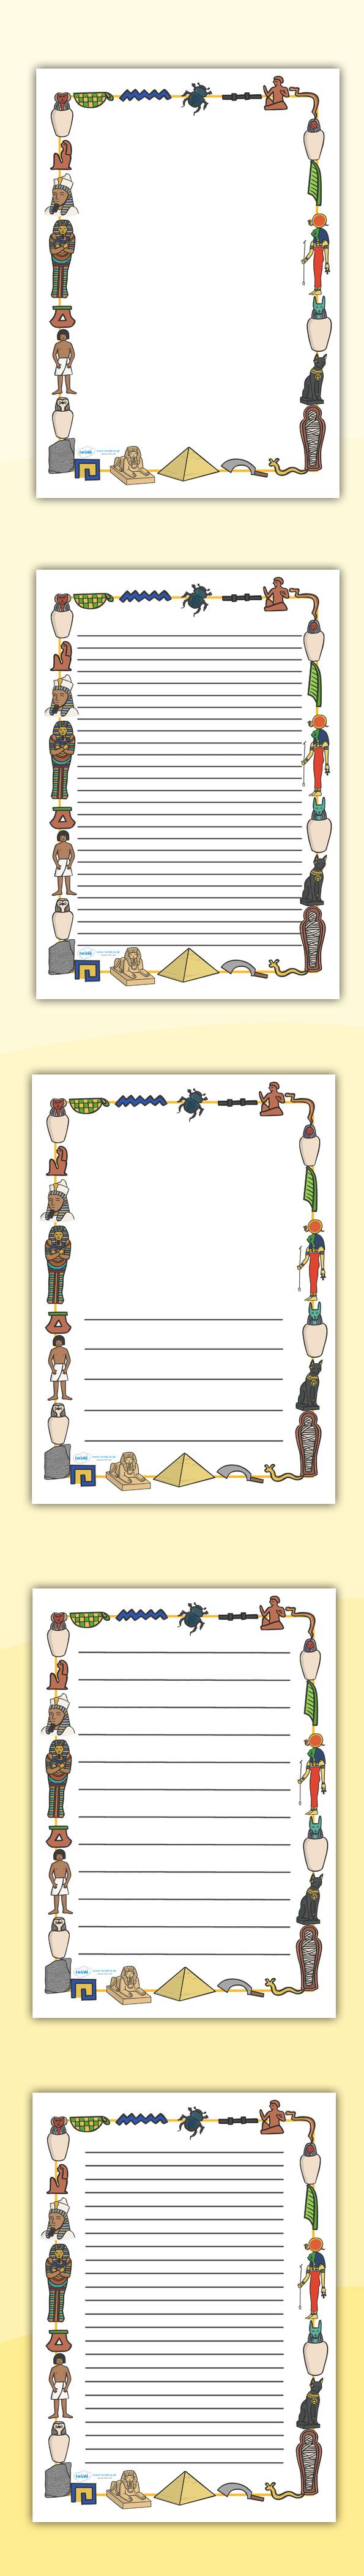 ancient egypt essay questions